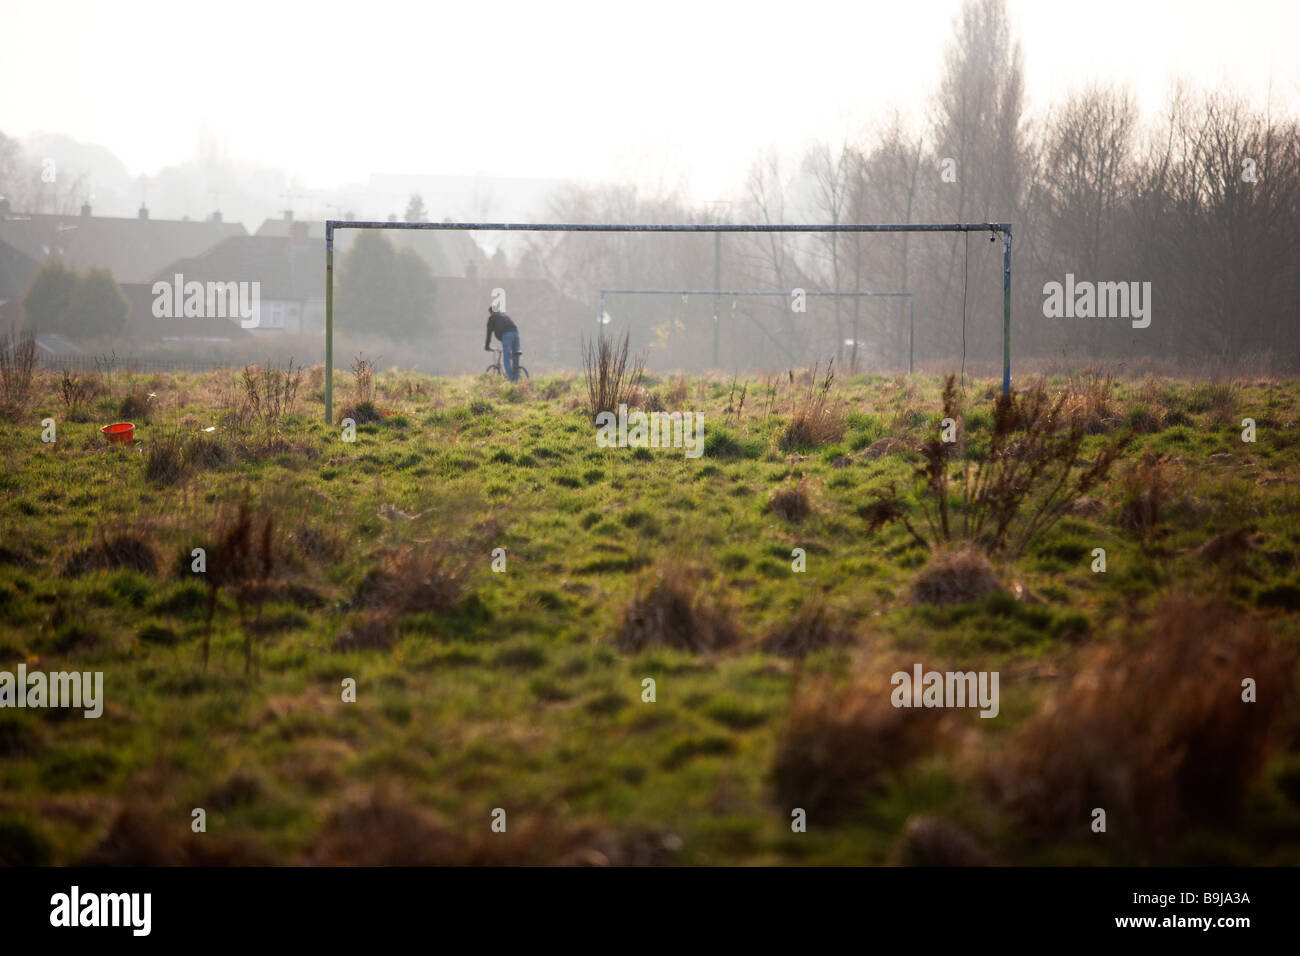 A football pitch, now overgrown and abandoned, on the outskirts of Coventry, UK - Stock Image